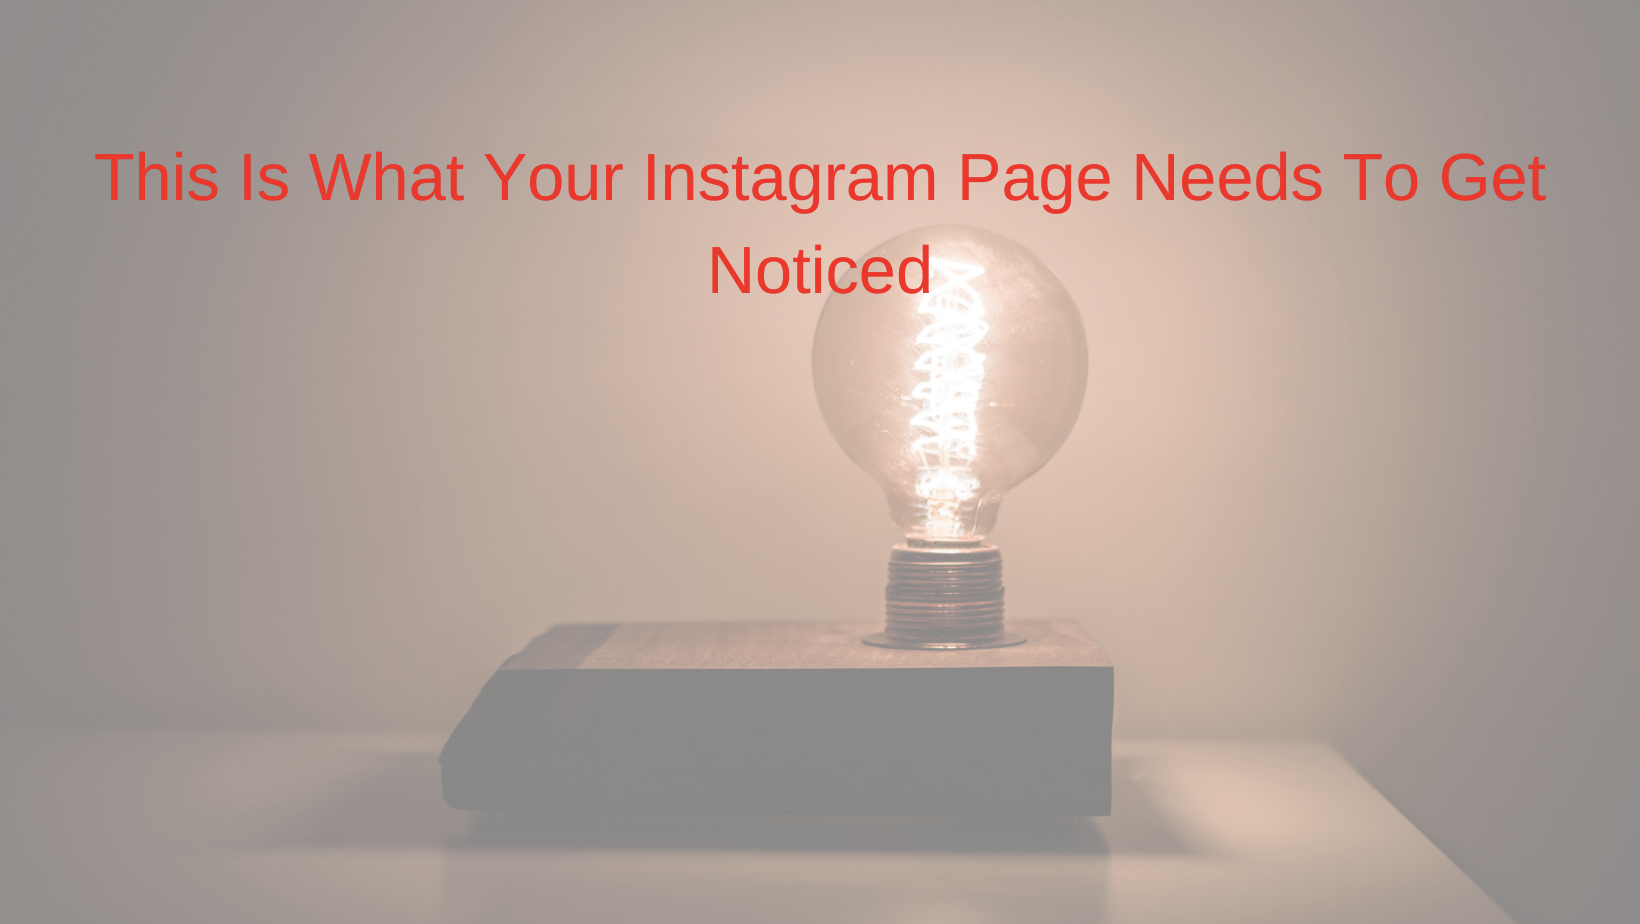 This Is What Your Instagram Page Needs To Get Noticed